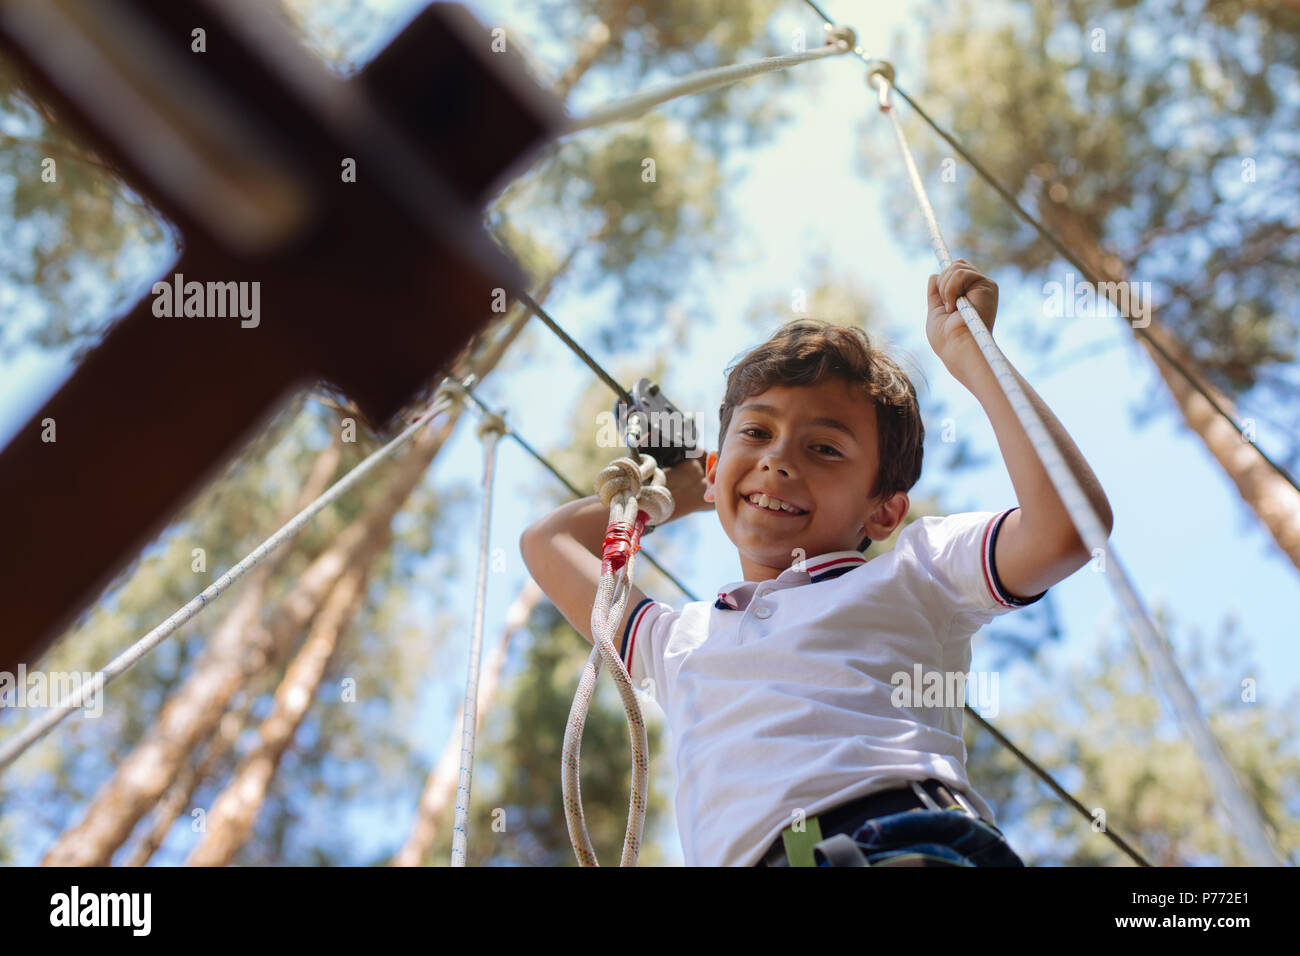 Upbeat preteen boy smiling from rope park trial - Stock Image